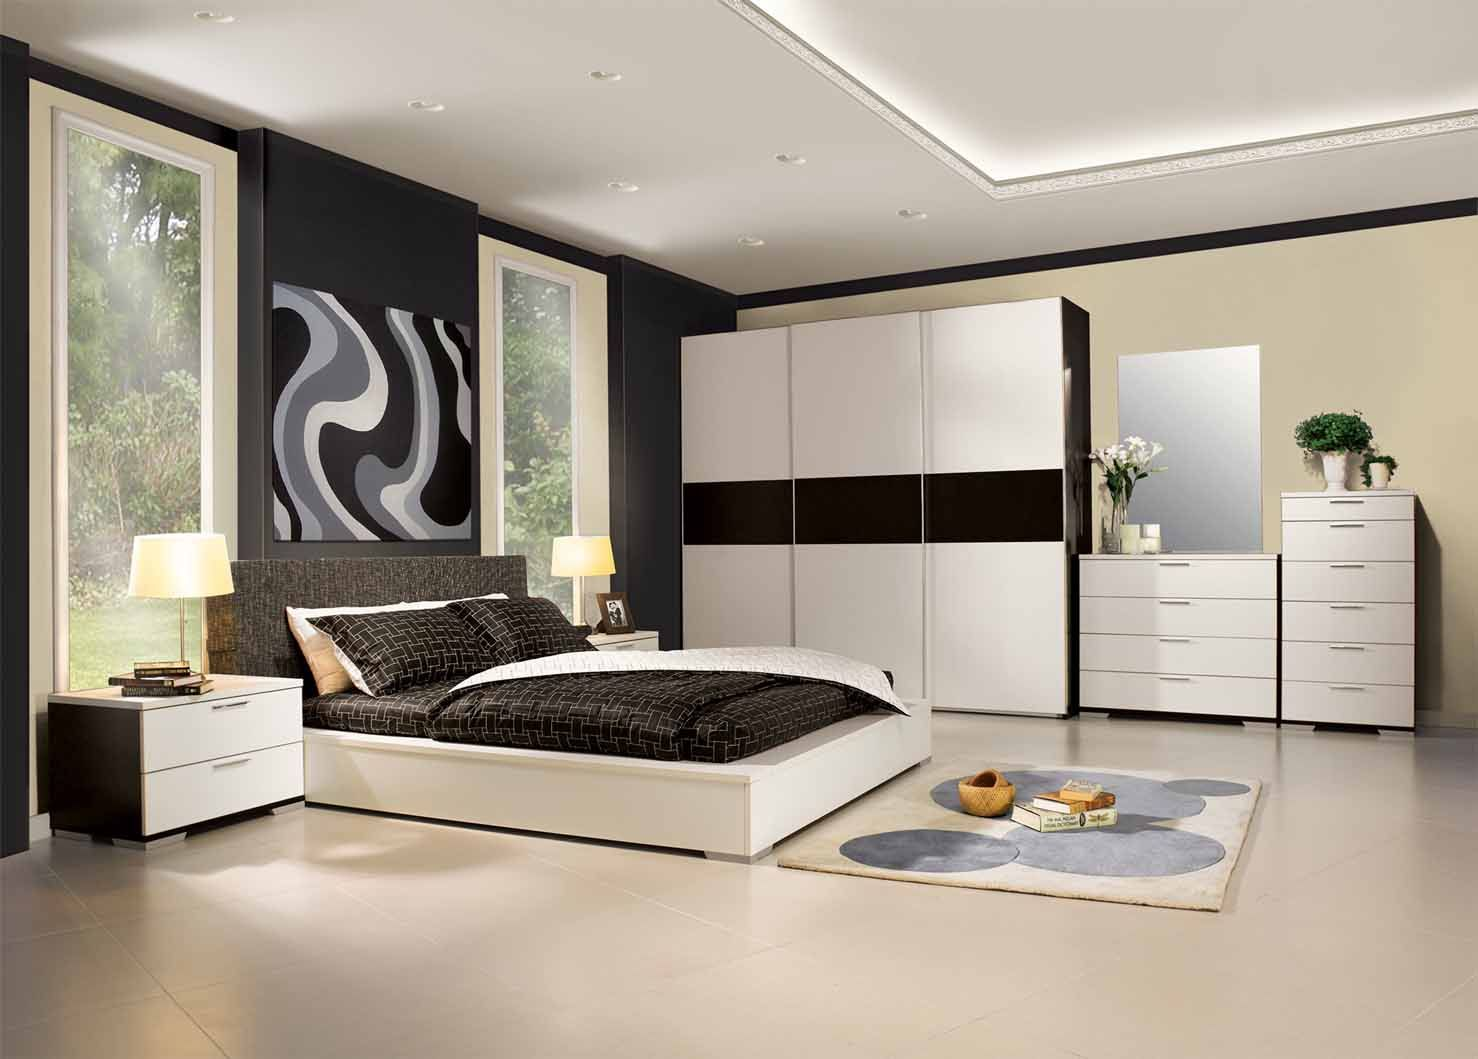 Image of: Buy aspen bedroom furniture